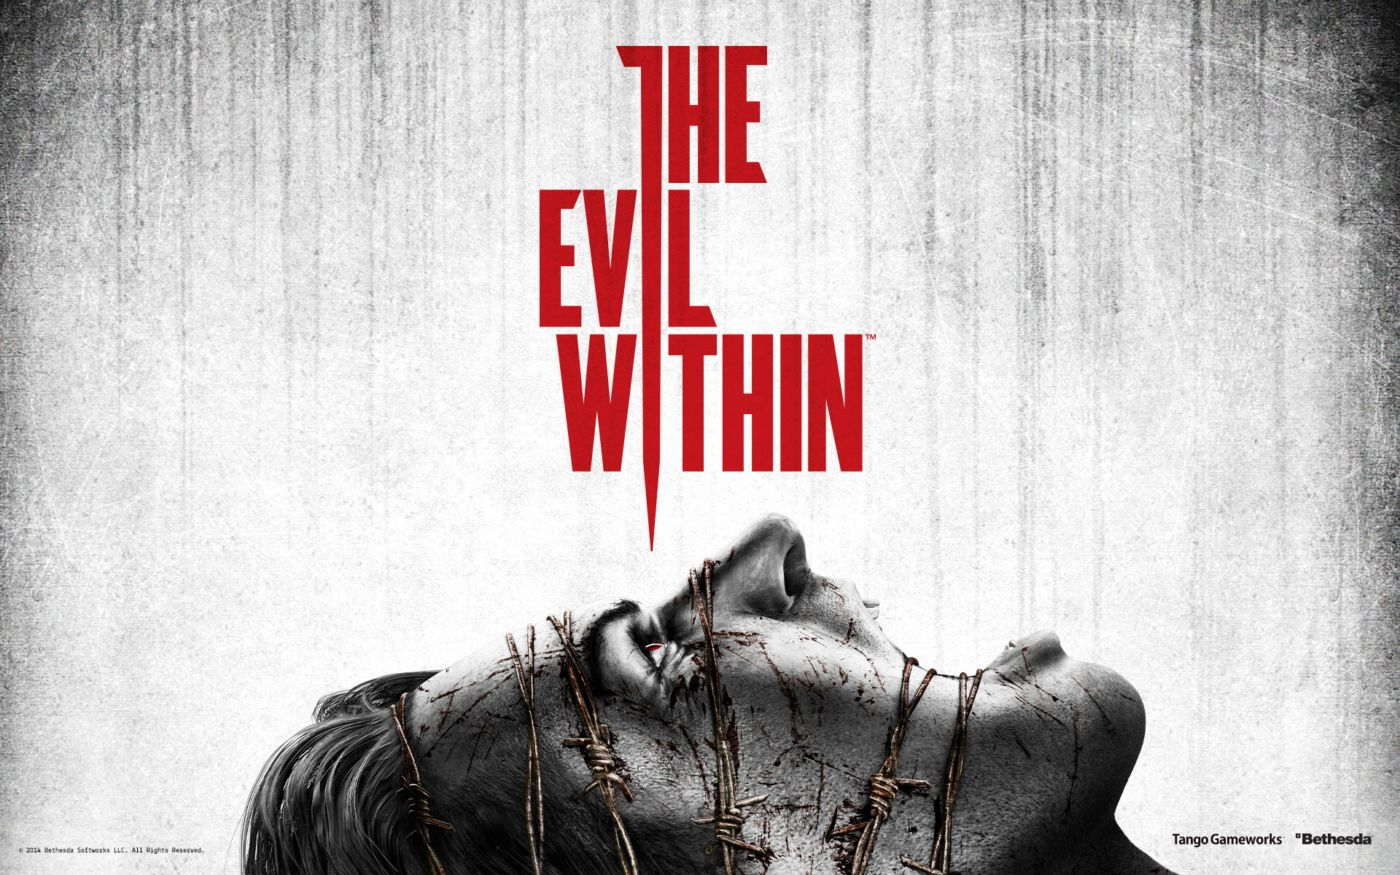 the-evil-within-cover-art